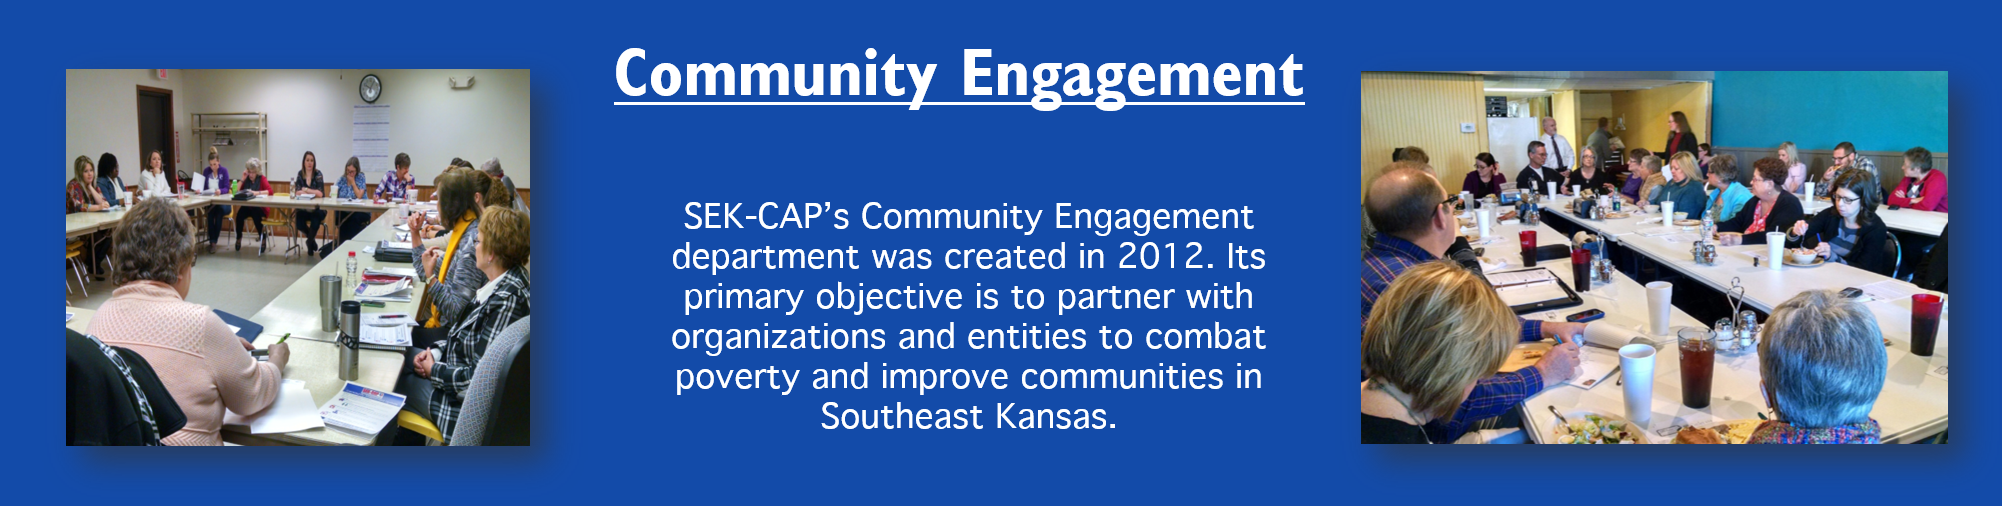 Community Engagement Header